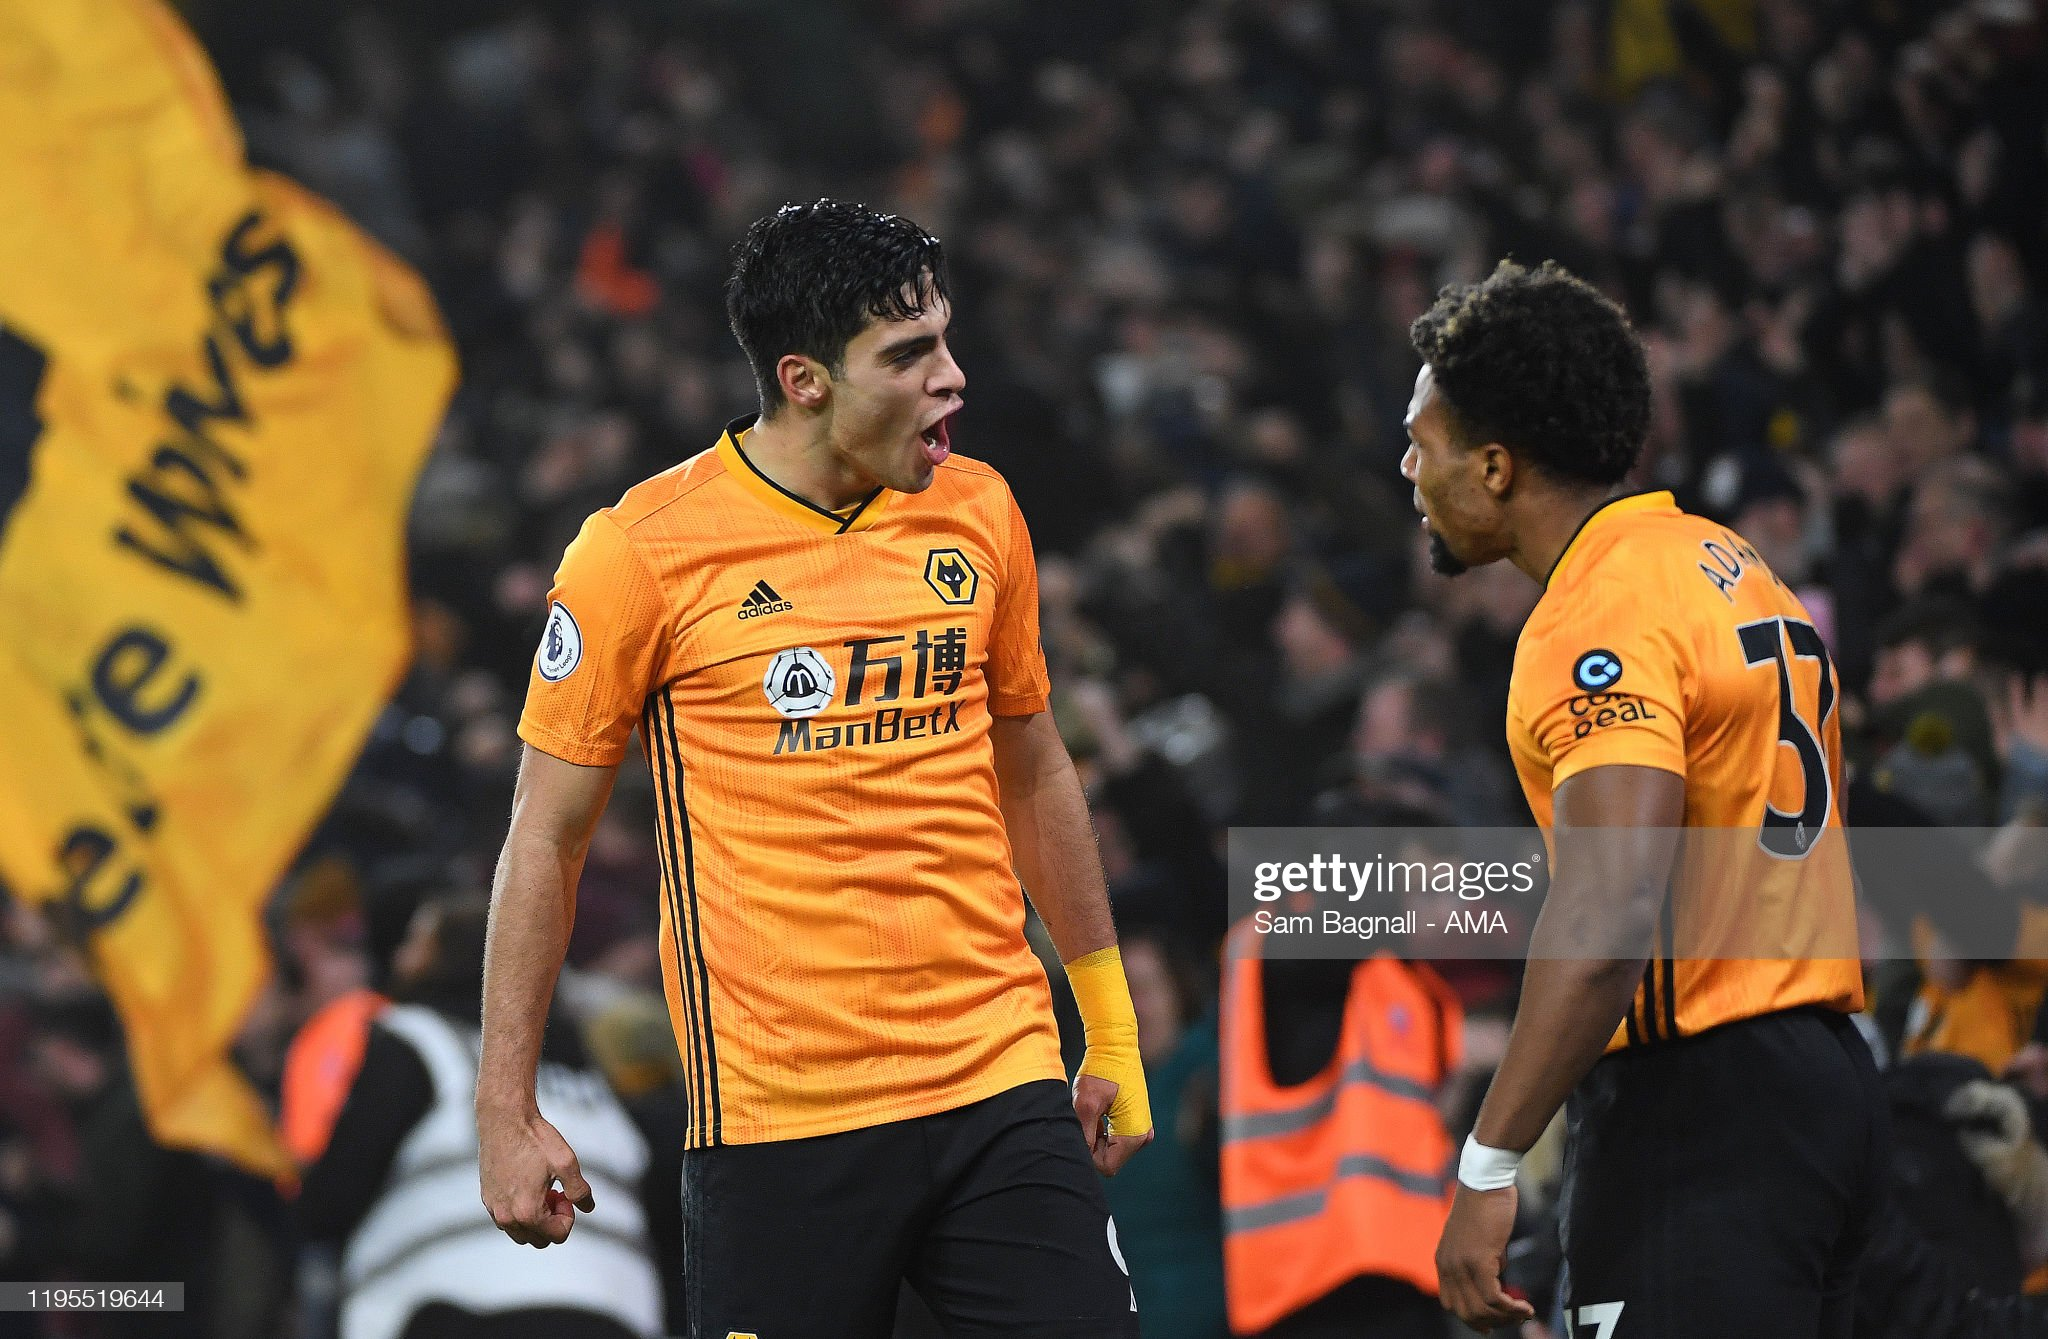 Wolves v Espanyol preview, prediction and odds